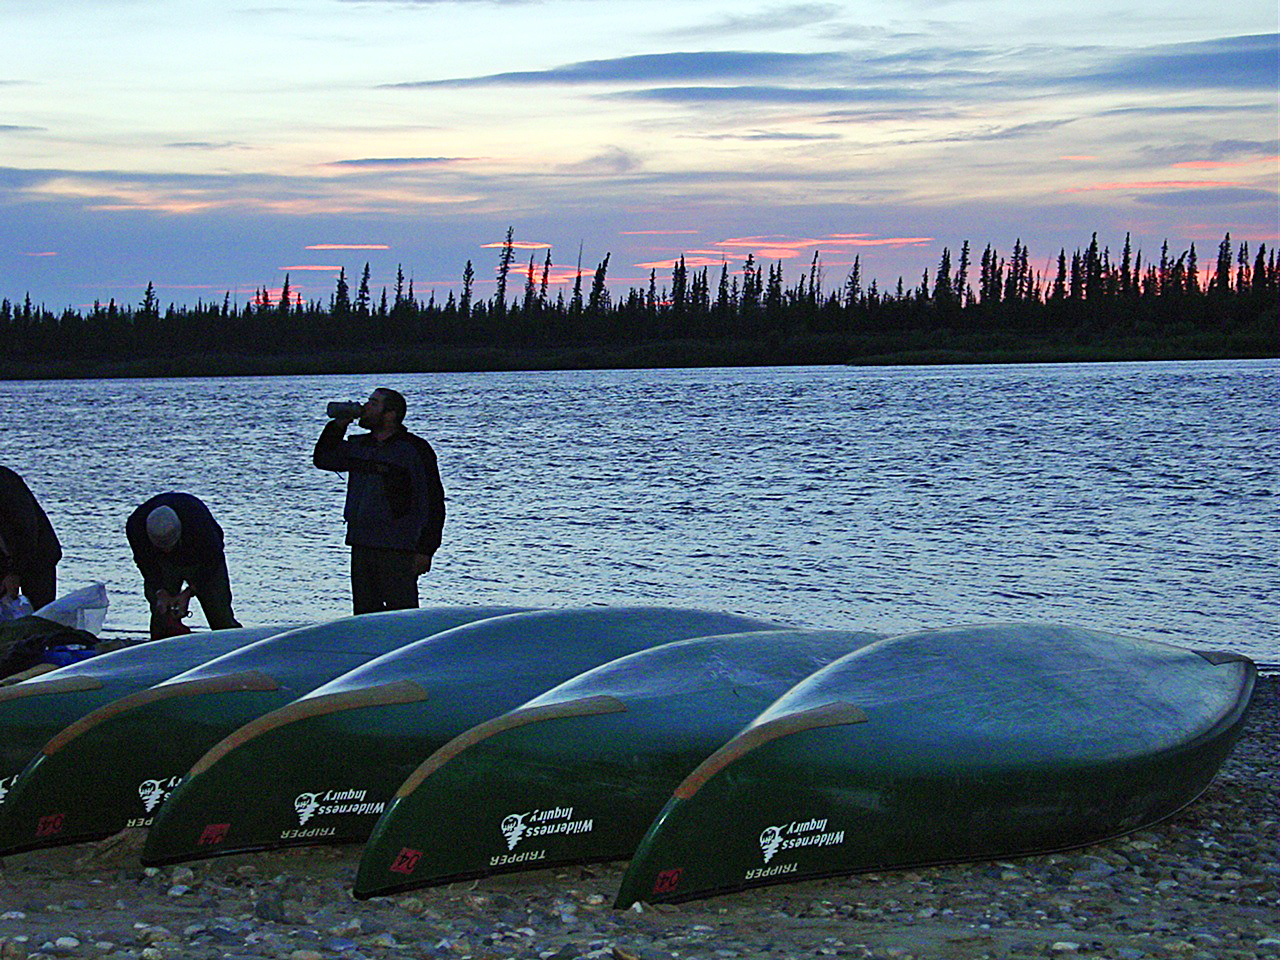 With the midnight sun in the background, a group of people stands and drinks coffee behind a line of tandem canoes on the riverbank.